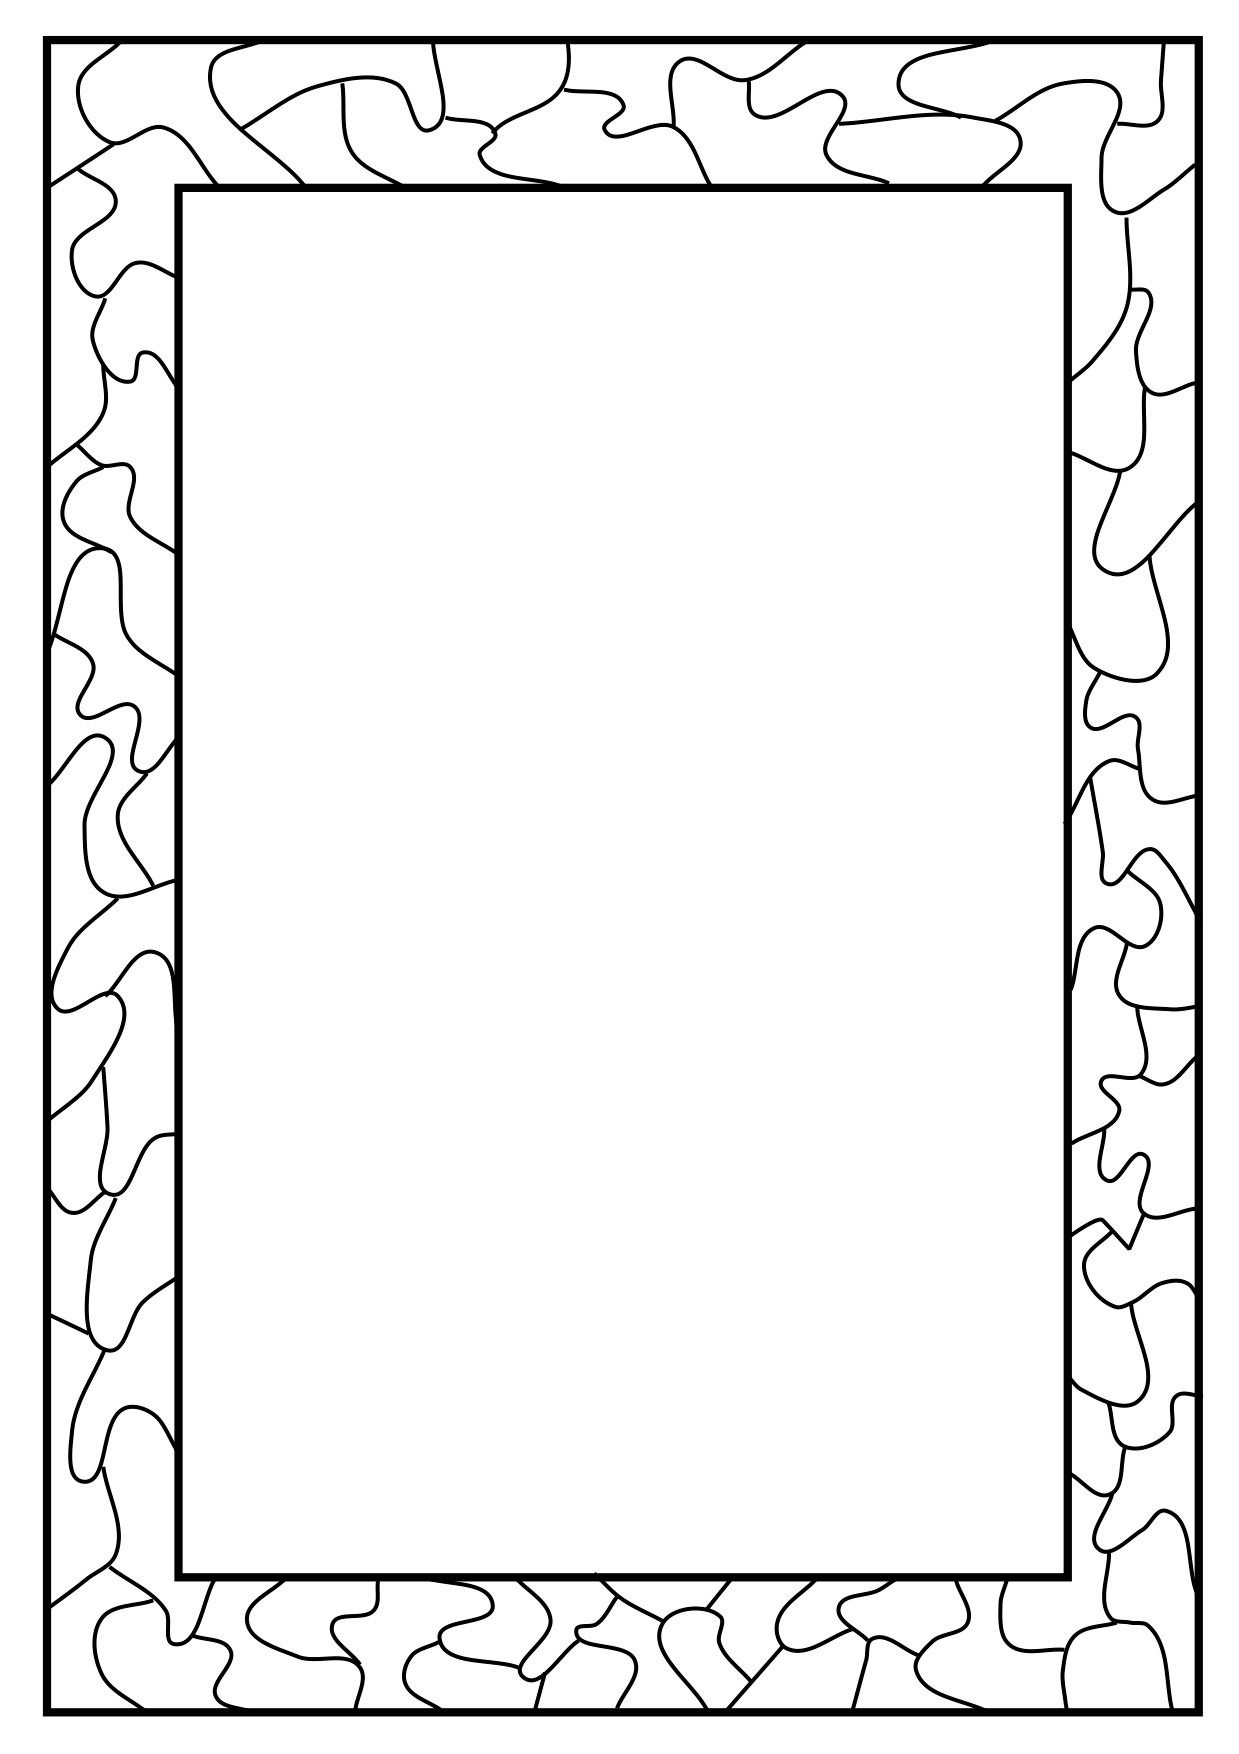 Full Page Borders - Print Out A Wide Range Of Free Page Borders And - Free Printable Page Borders